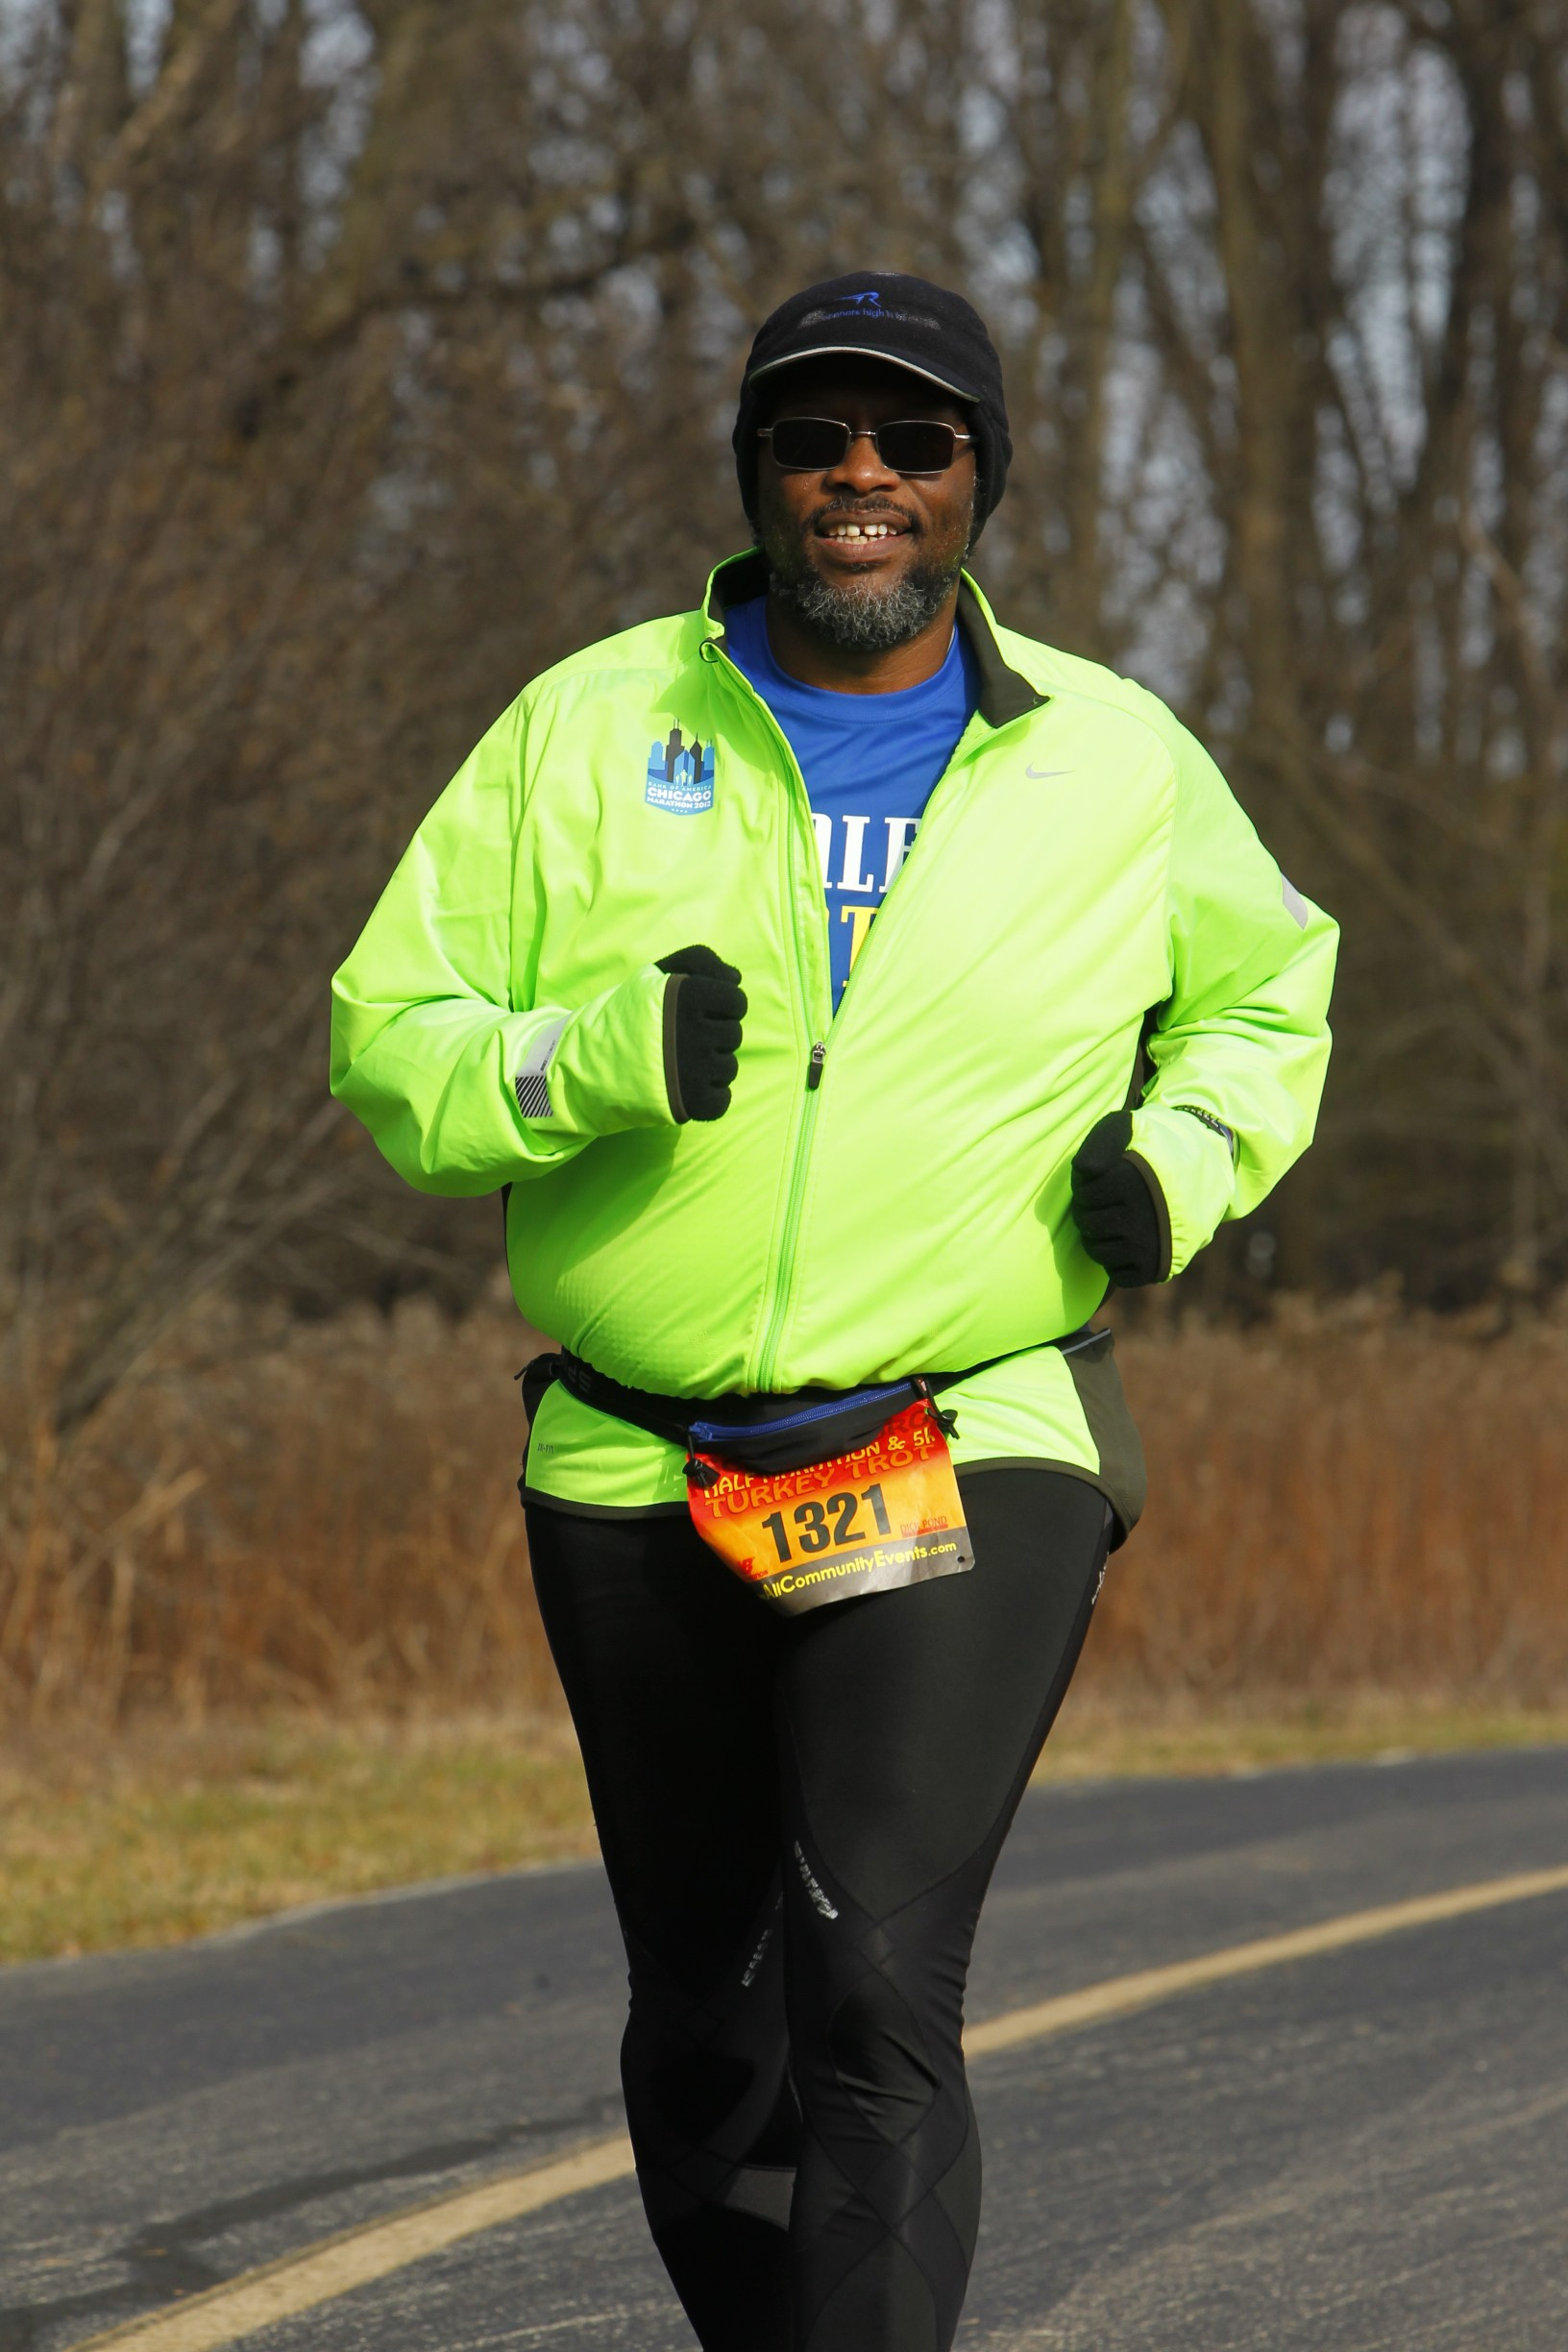 That's me running in the Schaumburg Turkey Trot Half Marathon